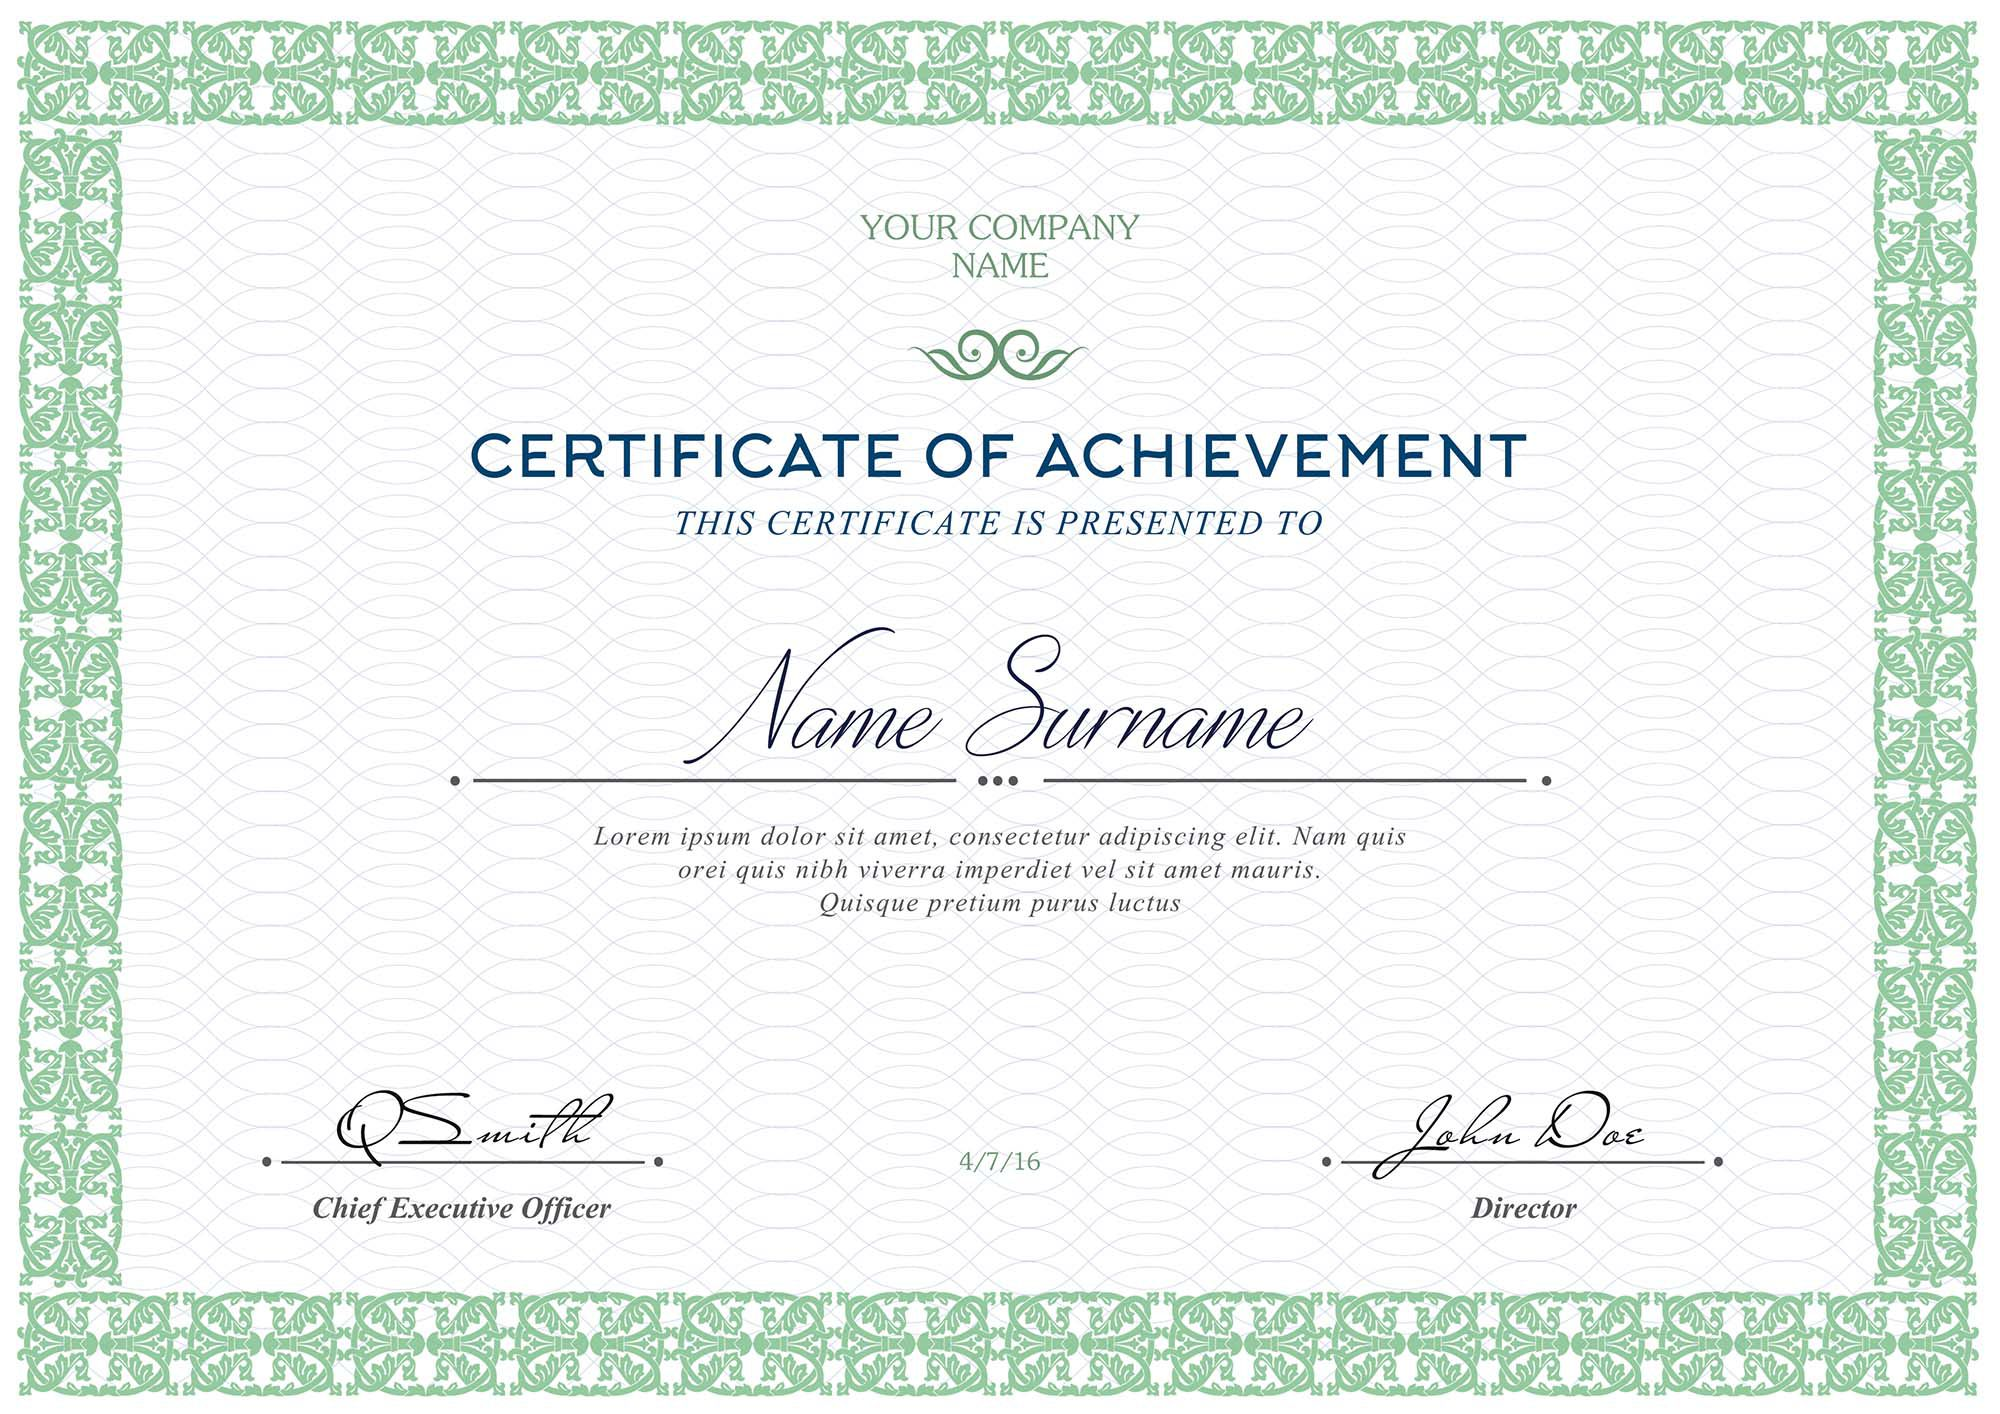 006 Fascinating Free Printable Certificate Template Highest Quality  Templates Blank Downloadable ParticipationFull